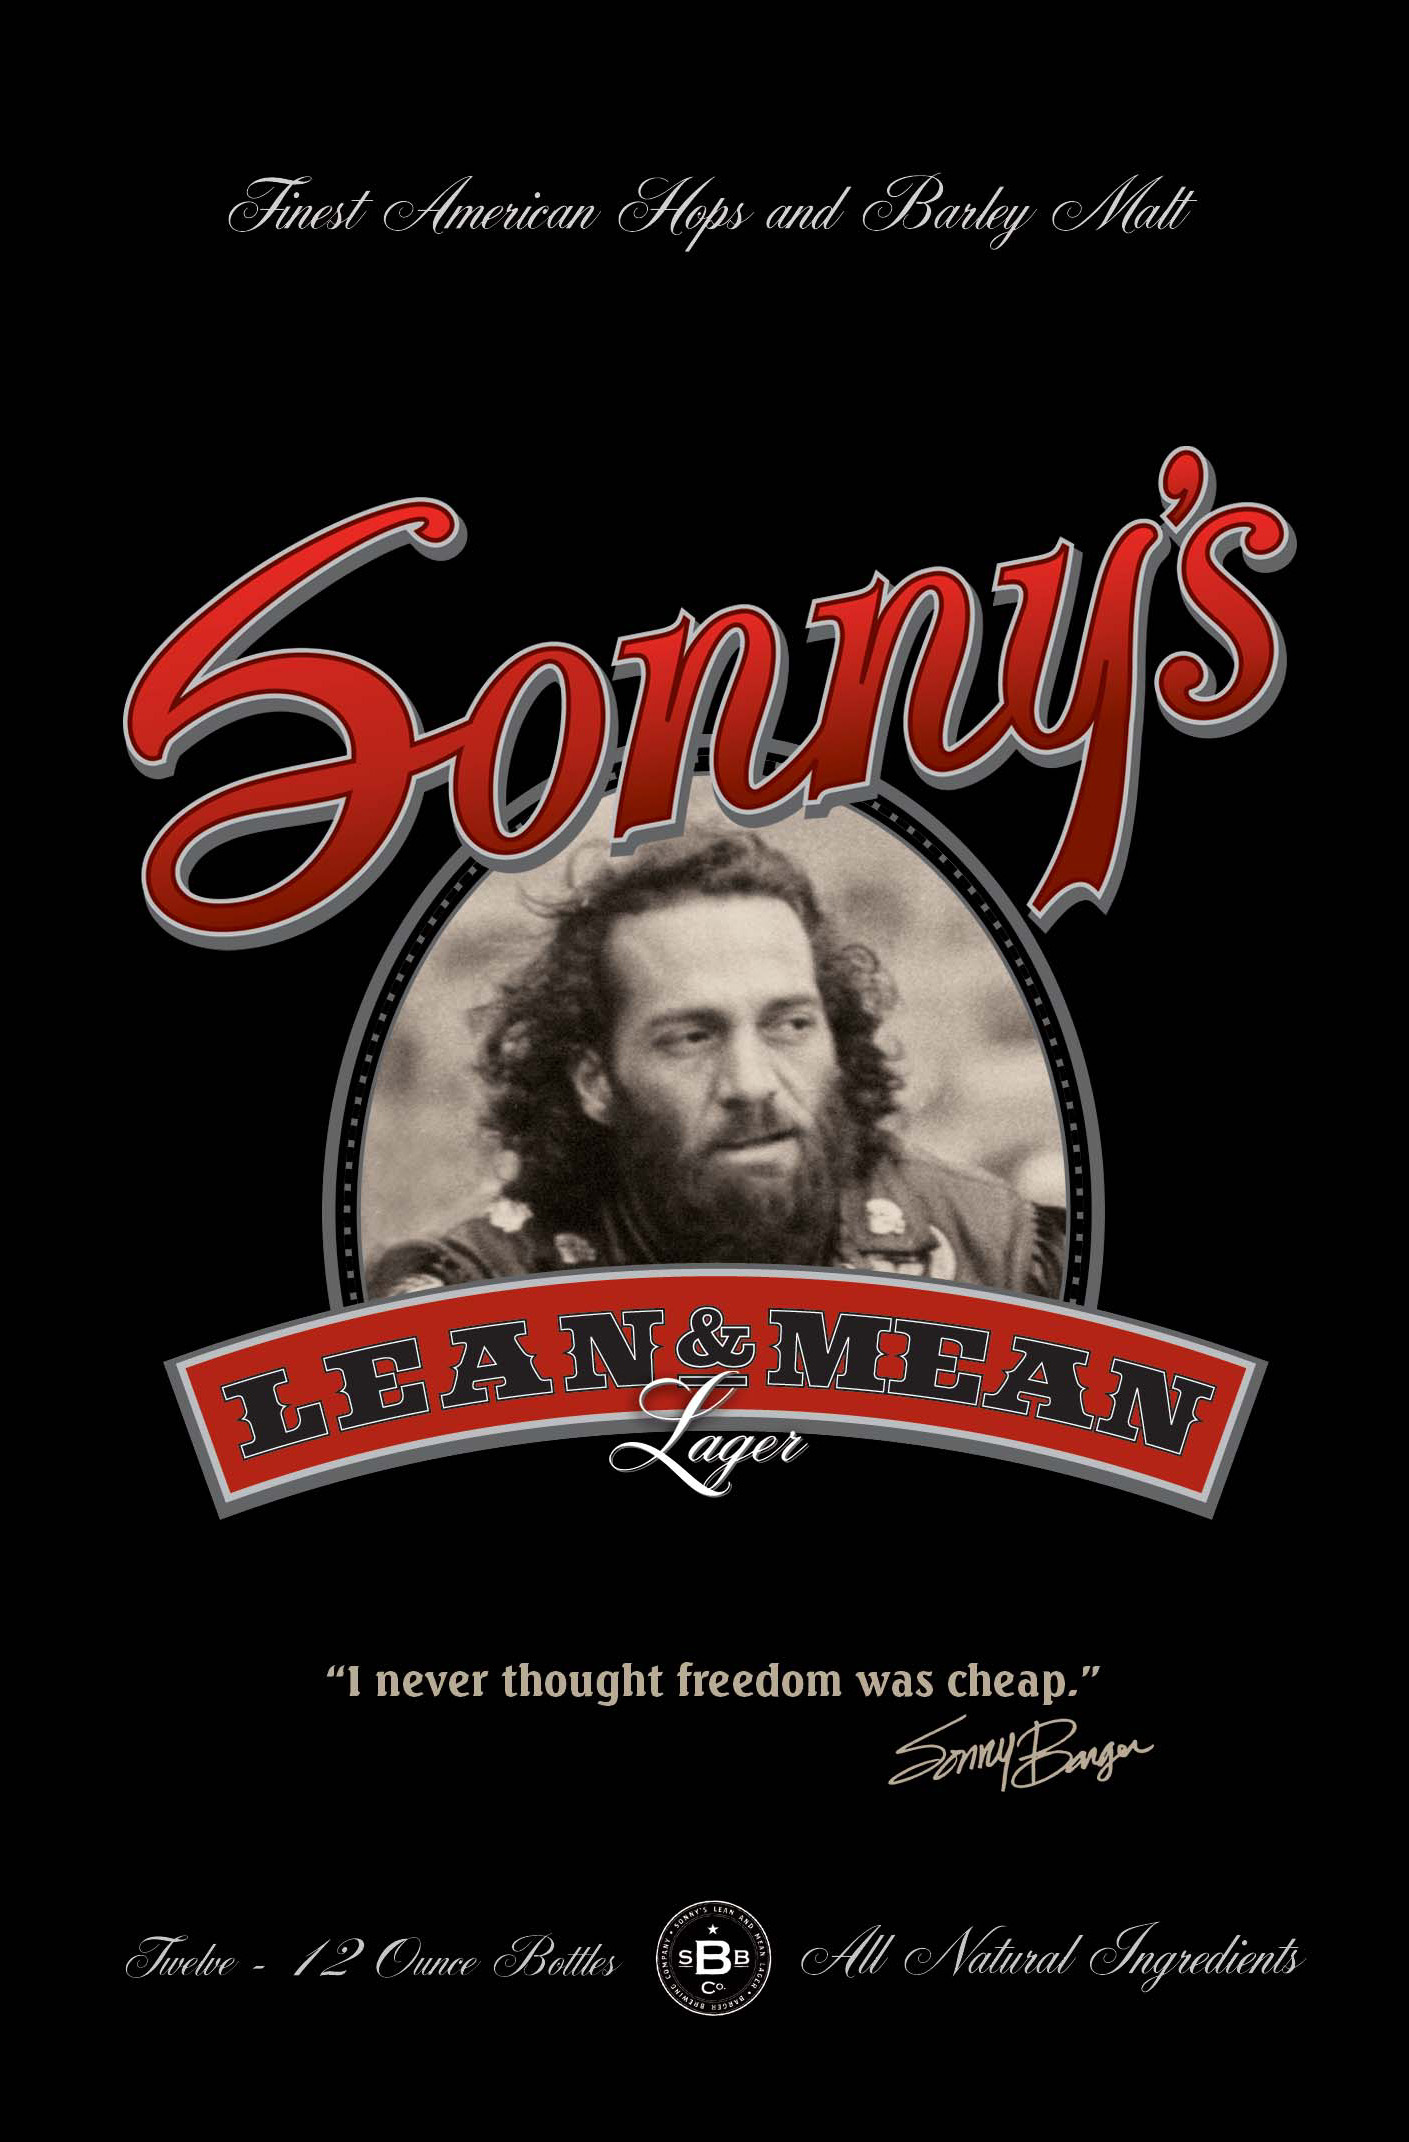 sonny barger sons of anarchysonny barger productions, sonny barger young, sonny barger tattoos, sonny barger freedom pdf, sonny barger, sonny barger net worth, sonny barger sons of anarchy, sonny barger quotes, sonny barger movie, sonny barger books, sonny barger died, sonny barger facebook, sonny barger hells angel, sonny barger kimdir, sonny barger funeral, sonny barger sons of anarchy youtube, sonny barger film, sonny barger wife, sonny barger interview, sonny barger height